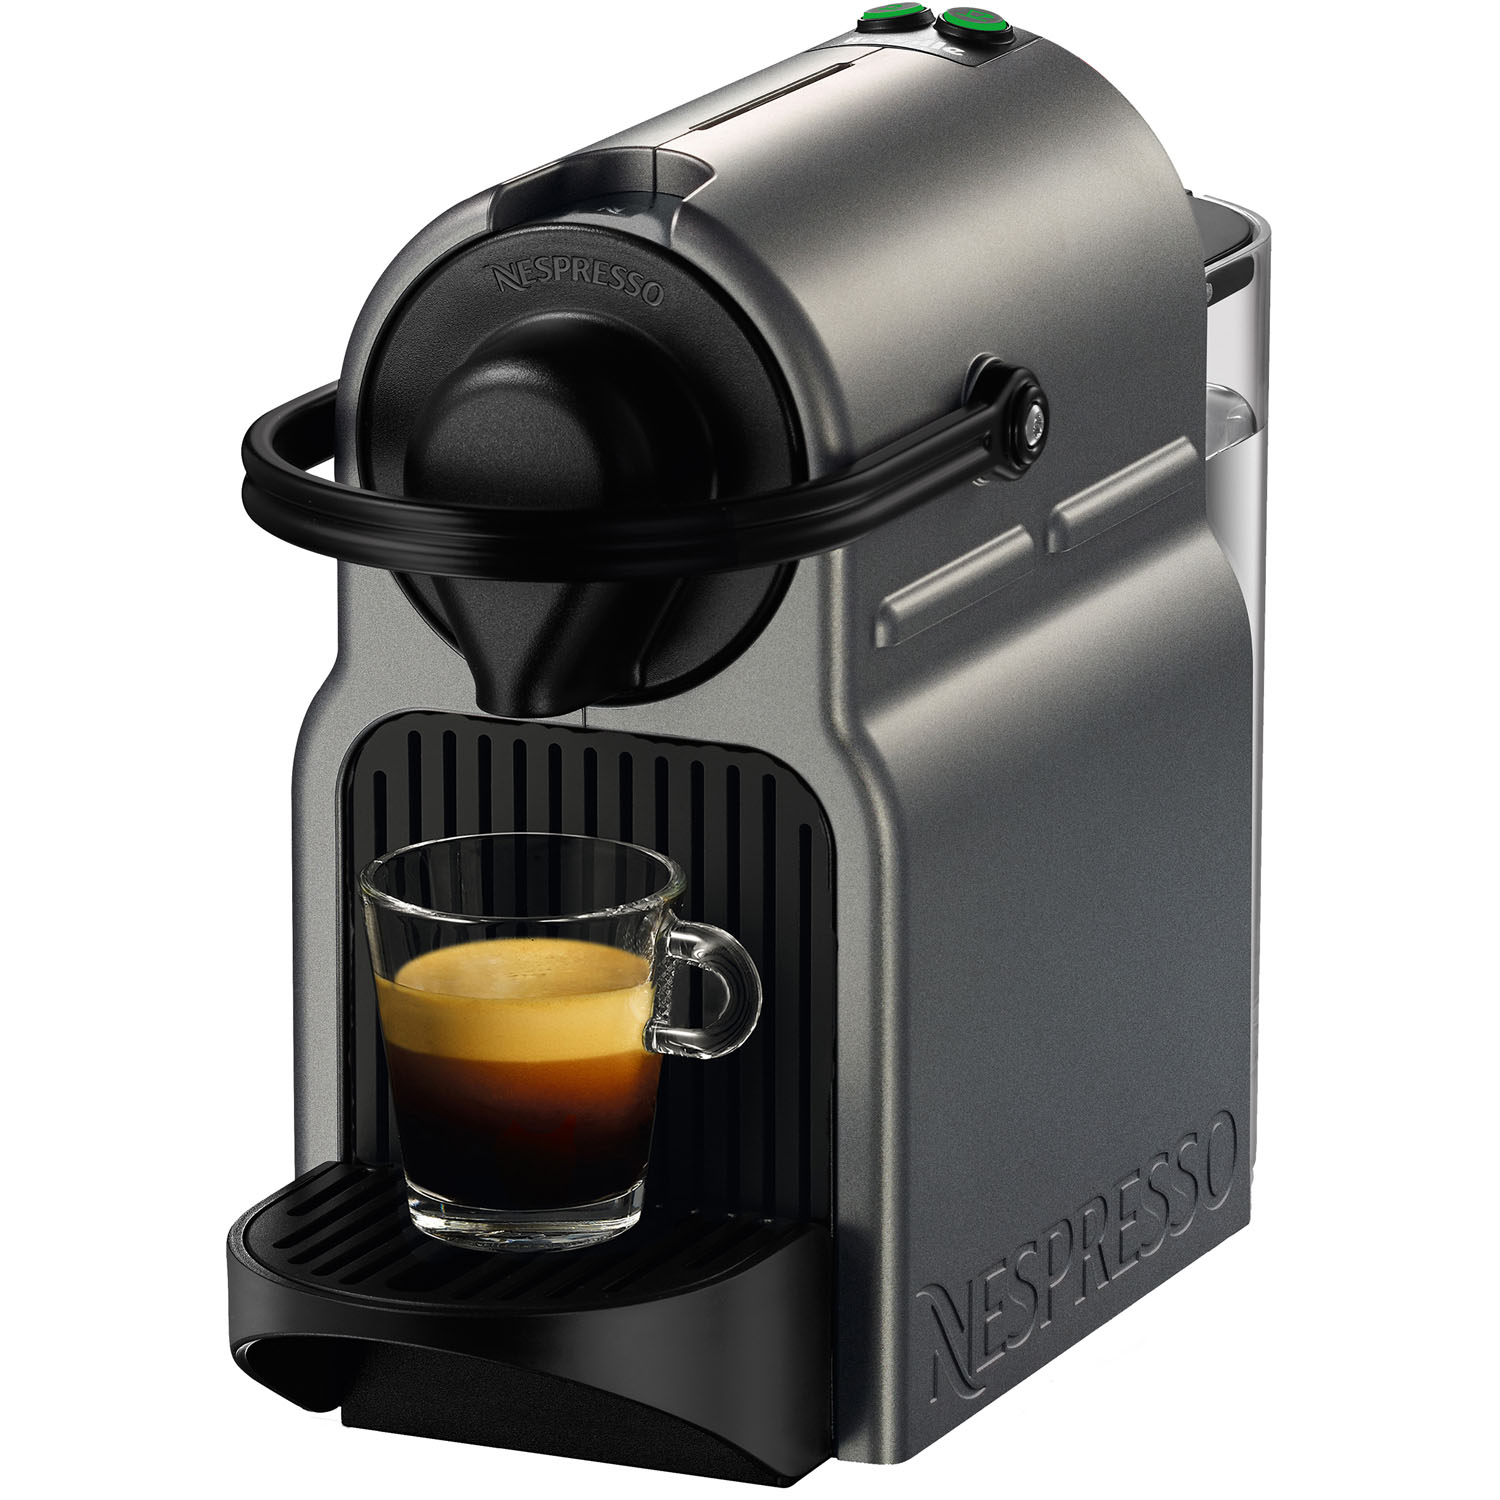 Breville Nespresso Inissia Single-Serve Espresso Machine